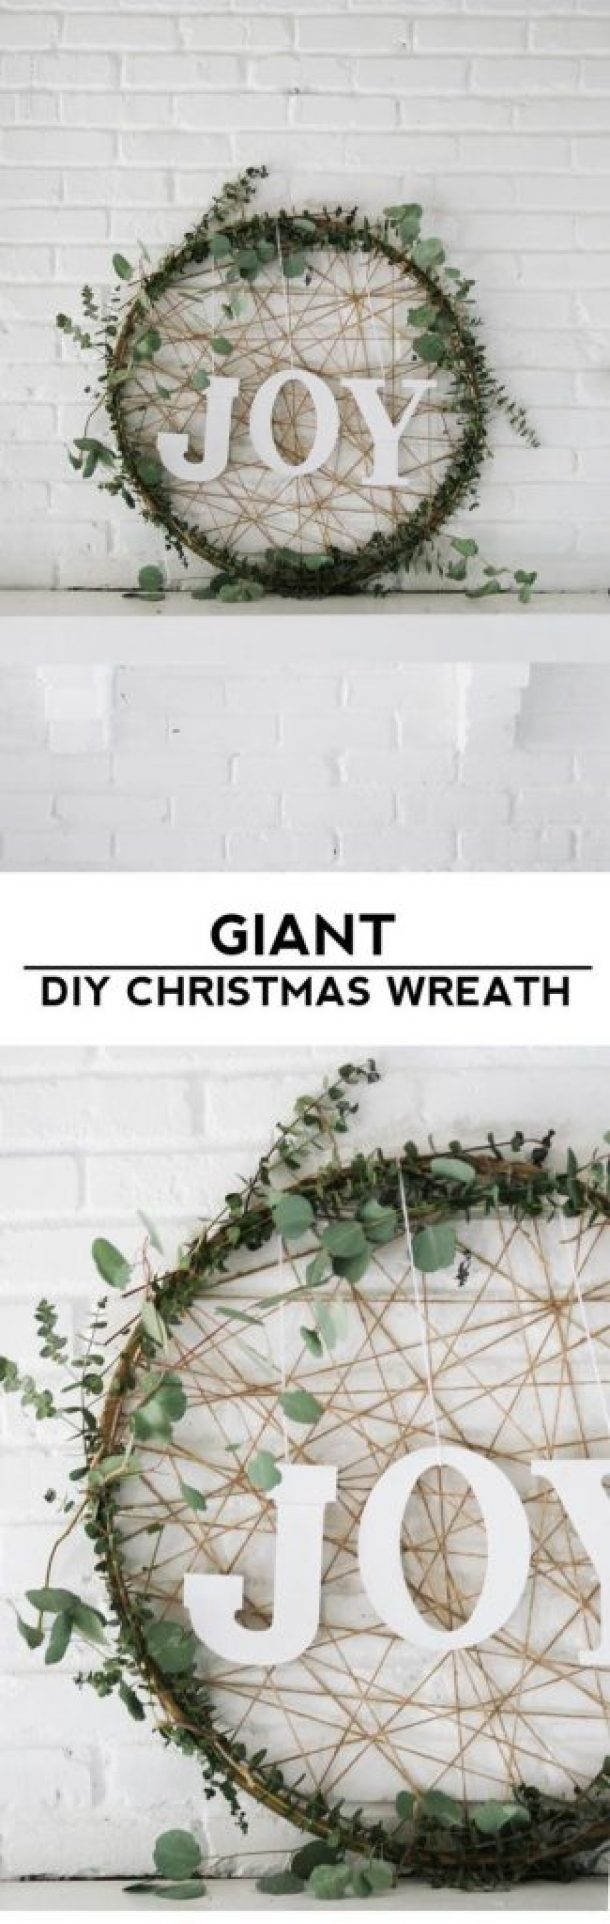 Grab a cheap hula hoop and make this Giant DIY Christmas Wreath | Homemade Ginger